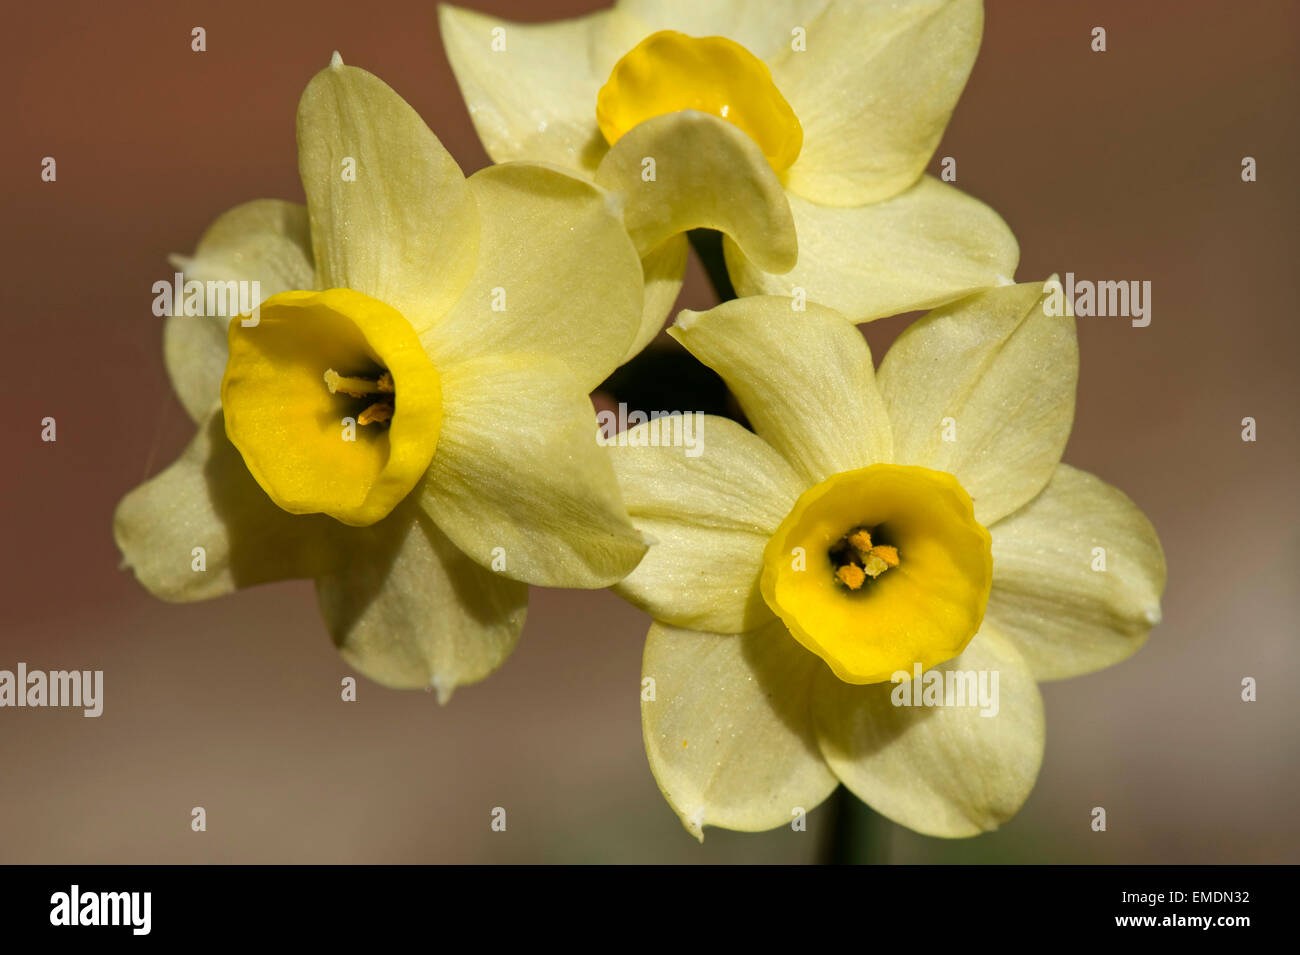 Yellow flowers of Narcissus 'Minnow' a spring flowering bulb - Stock Image